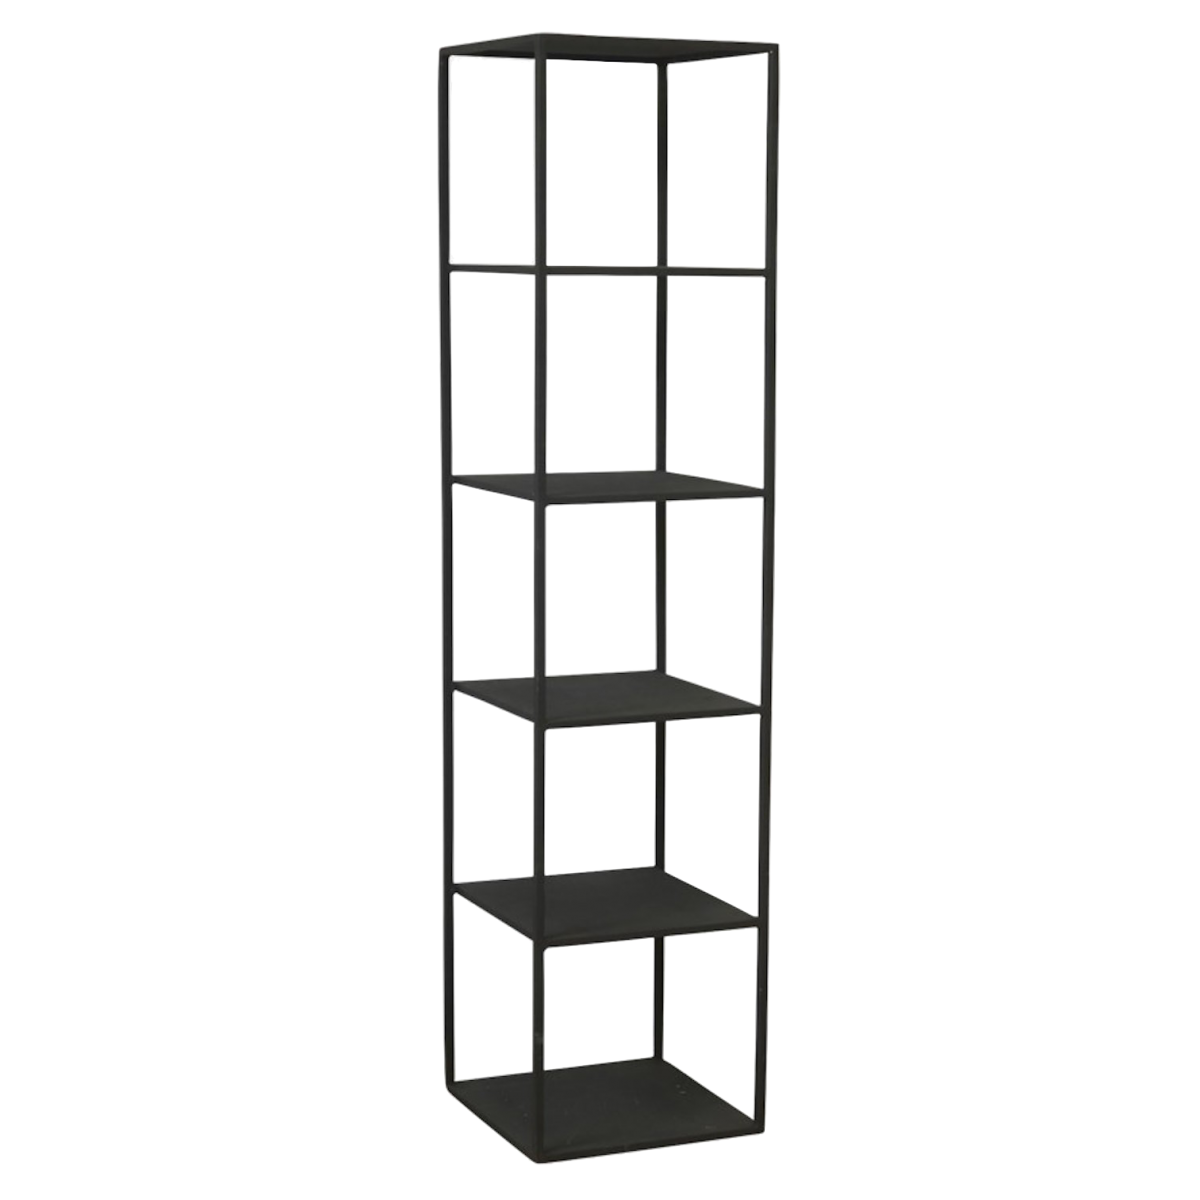 etagere metal noir id es de d coration int rieure french decor. Black Bedroom Furniture Sets. Home Design Ideas